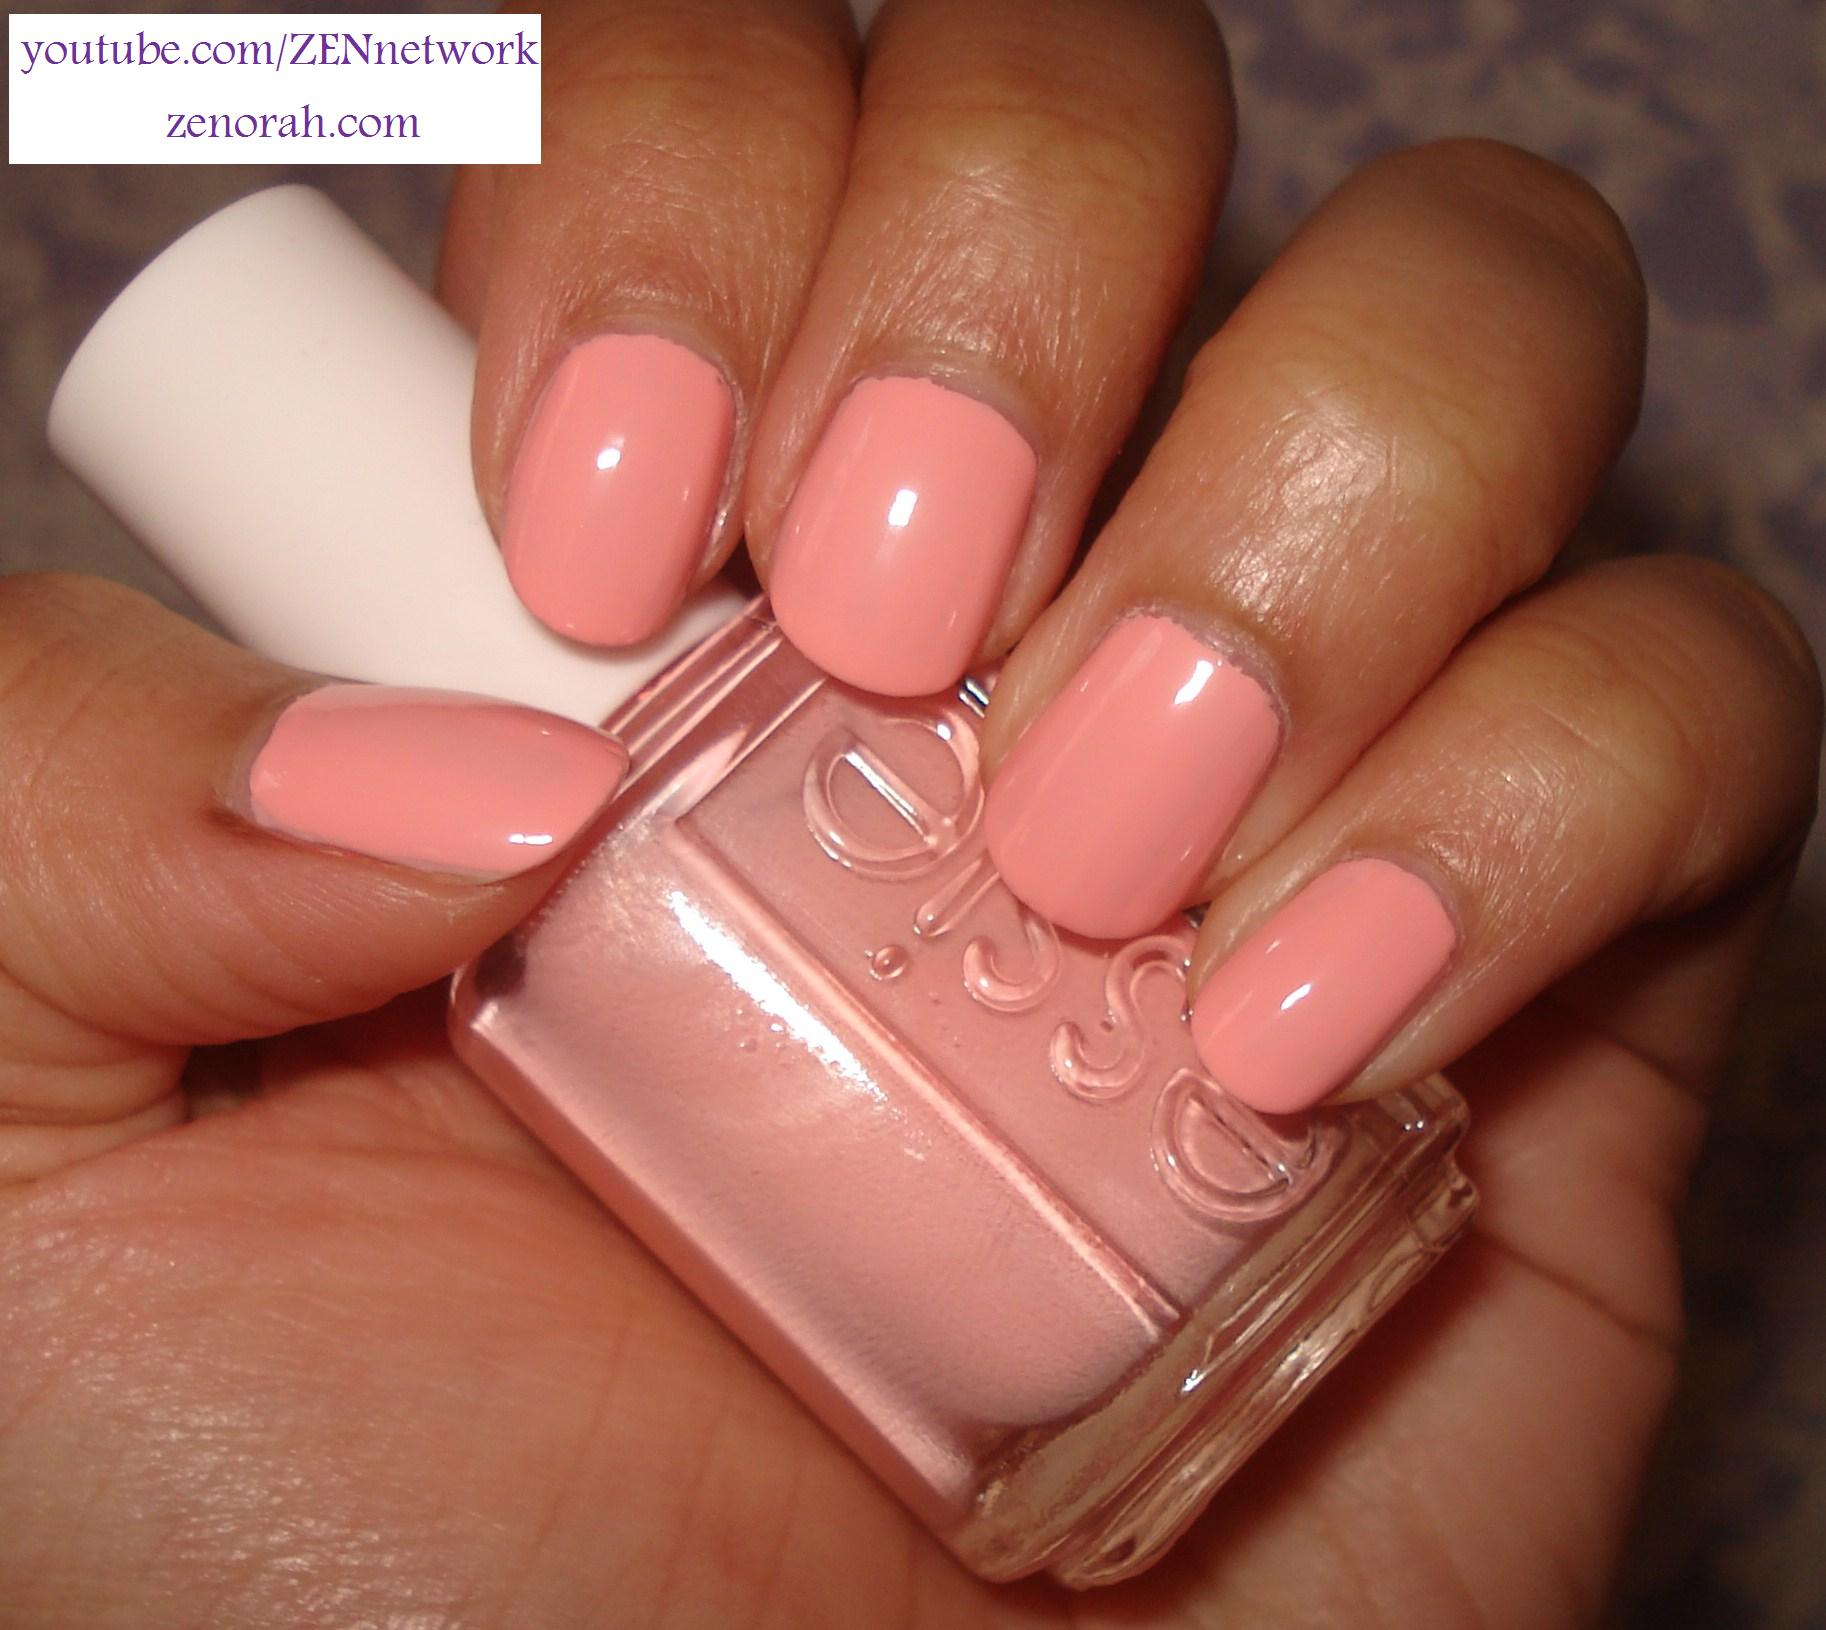 Pastel Orange Nail Polish Essie: Essie Nail Polish